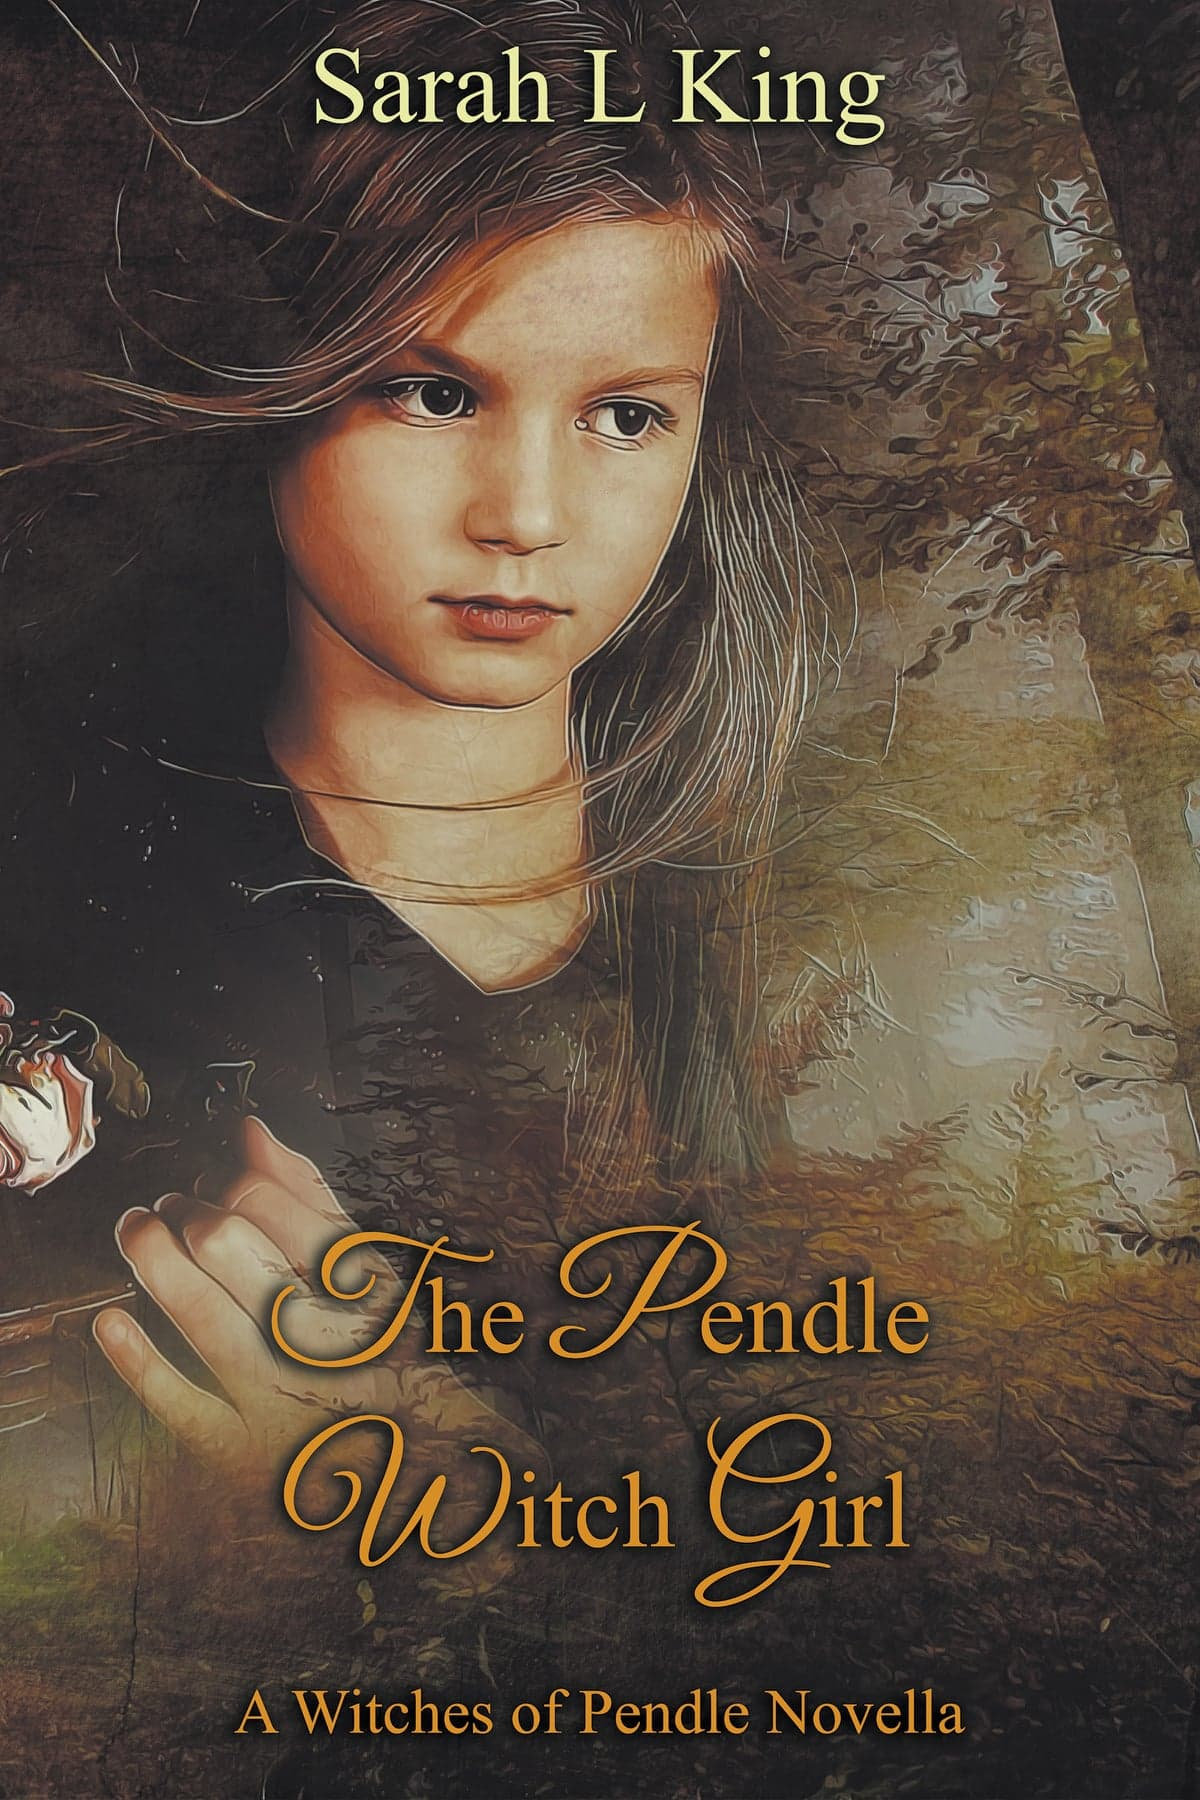 The Pendle Witch Girl